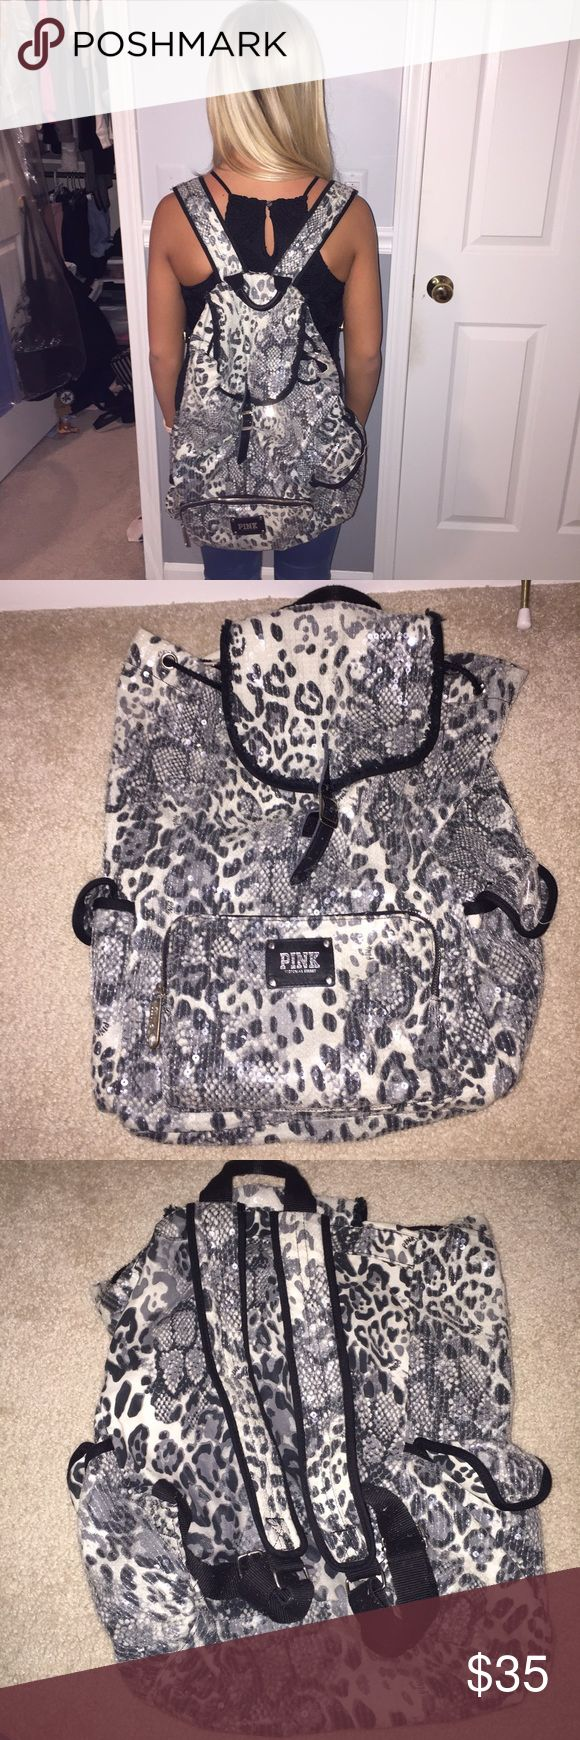 PINK cheetah sequin backpack PINK sequin cheetah backpack has lots of room for storage & is SUPER cute. Great for on the go or even for school. Used few times. PINK Victoria's Secret Bags Backpacks